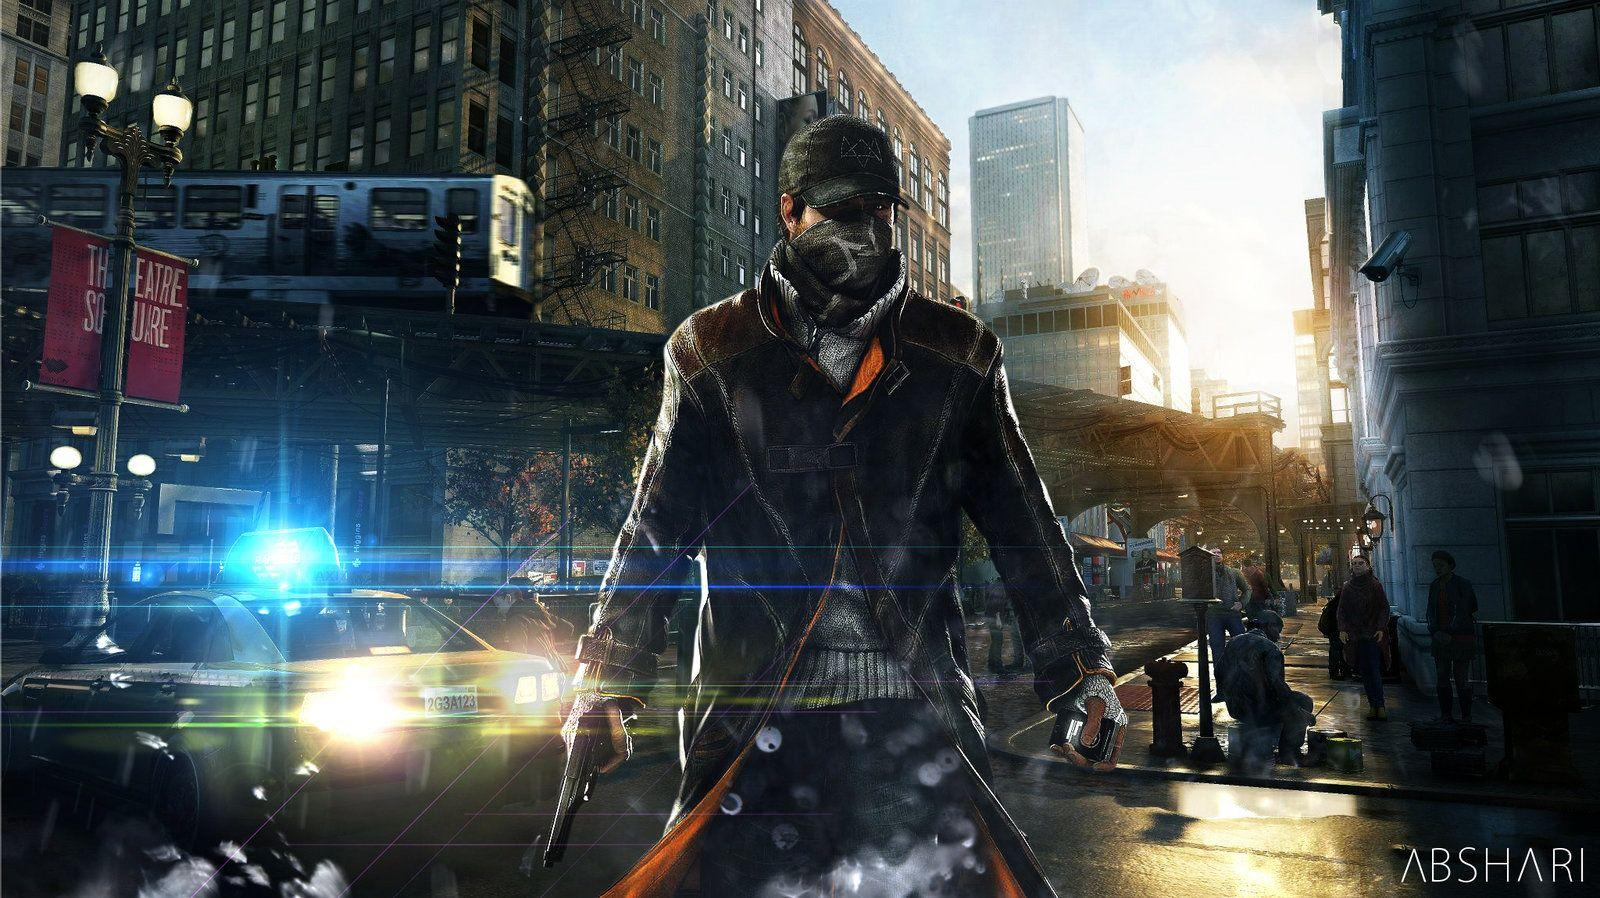 Watch Dogs 1 Wallpapers - Wallpaper Cave